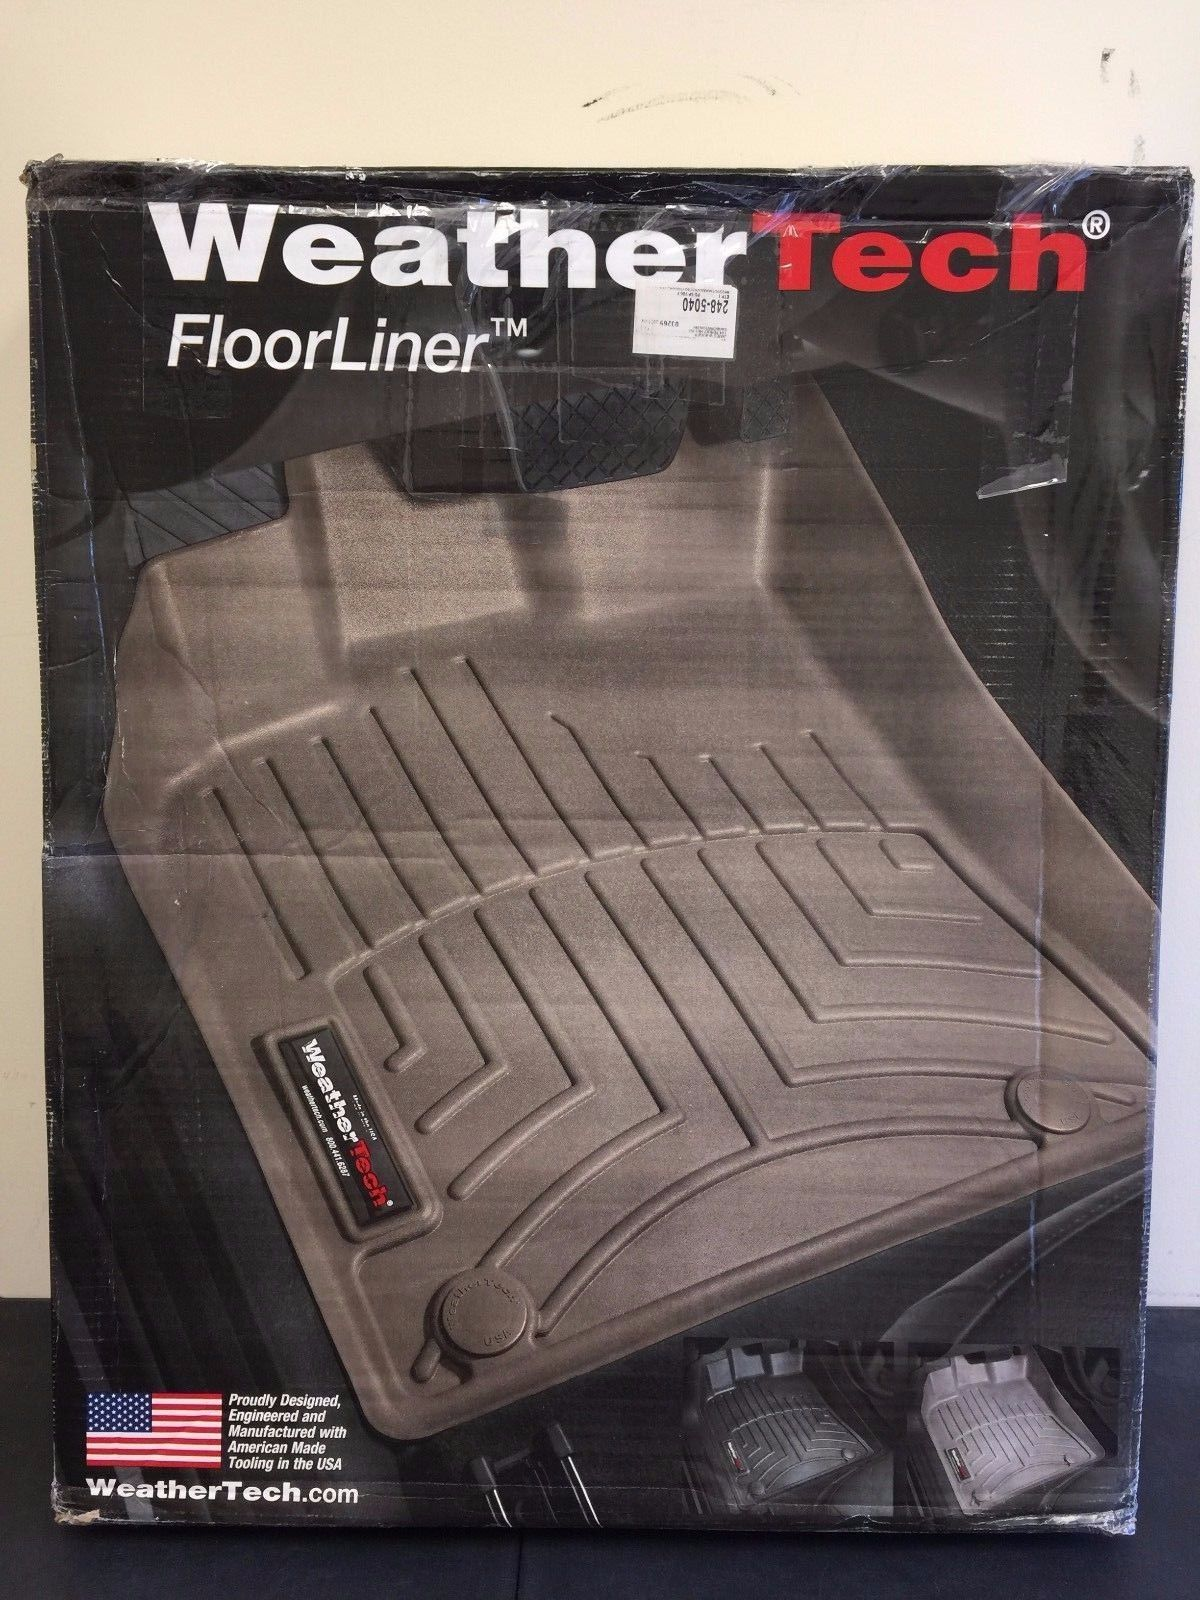 460841 weathertech and analogs of other manufacturers